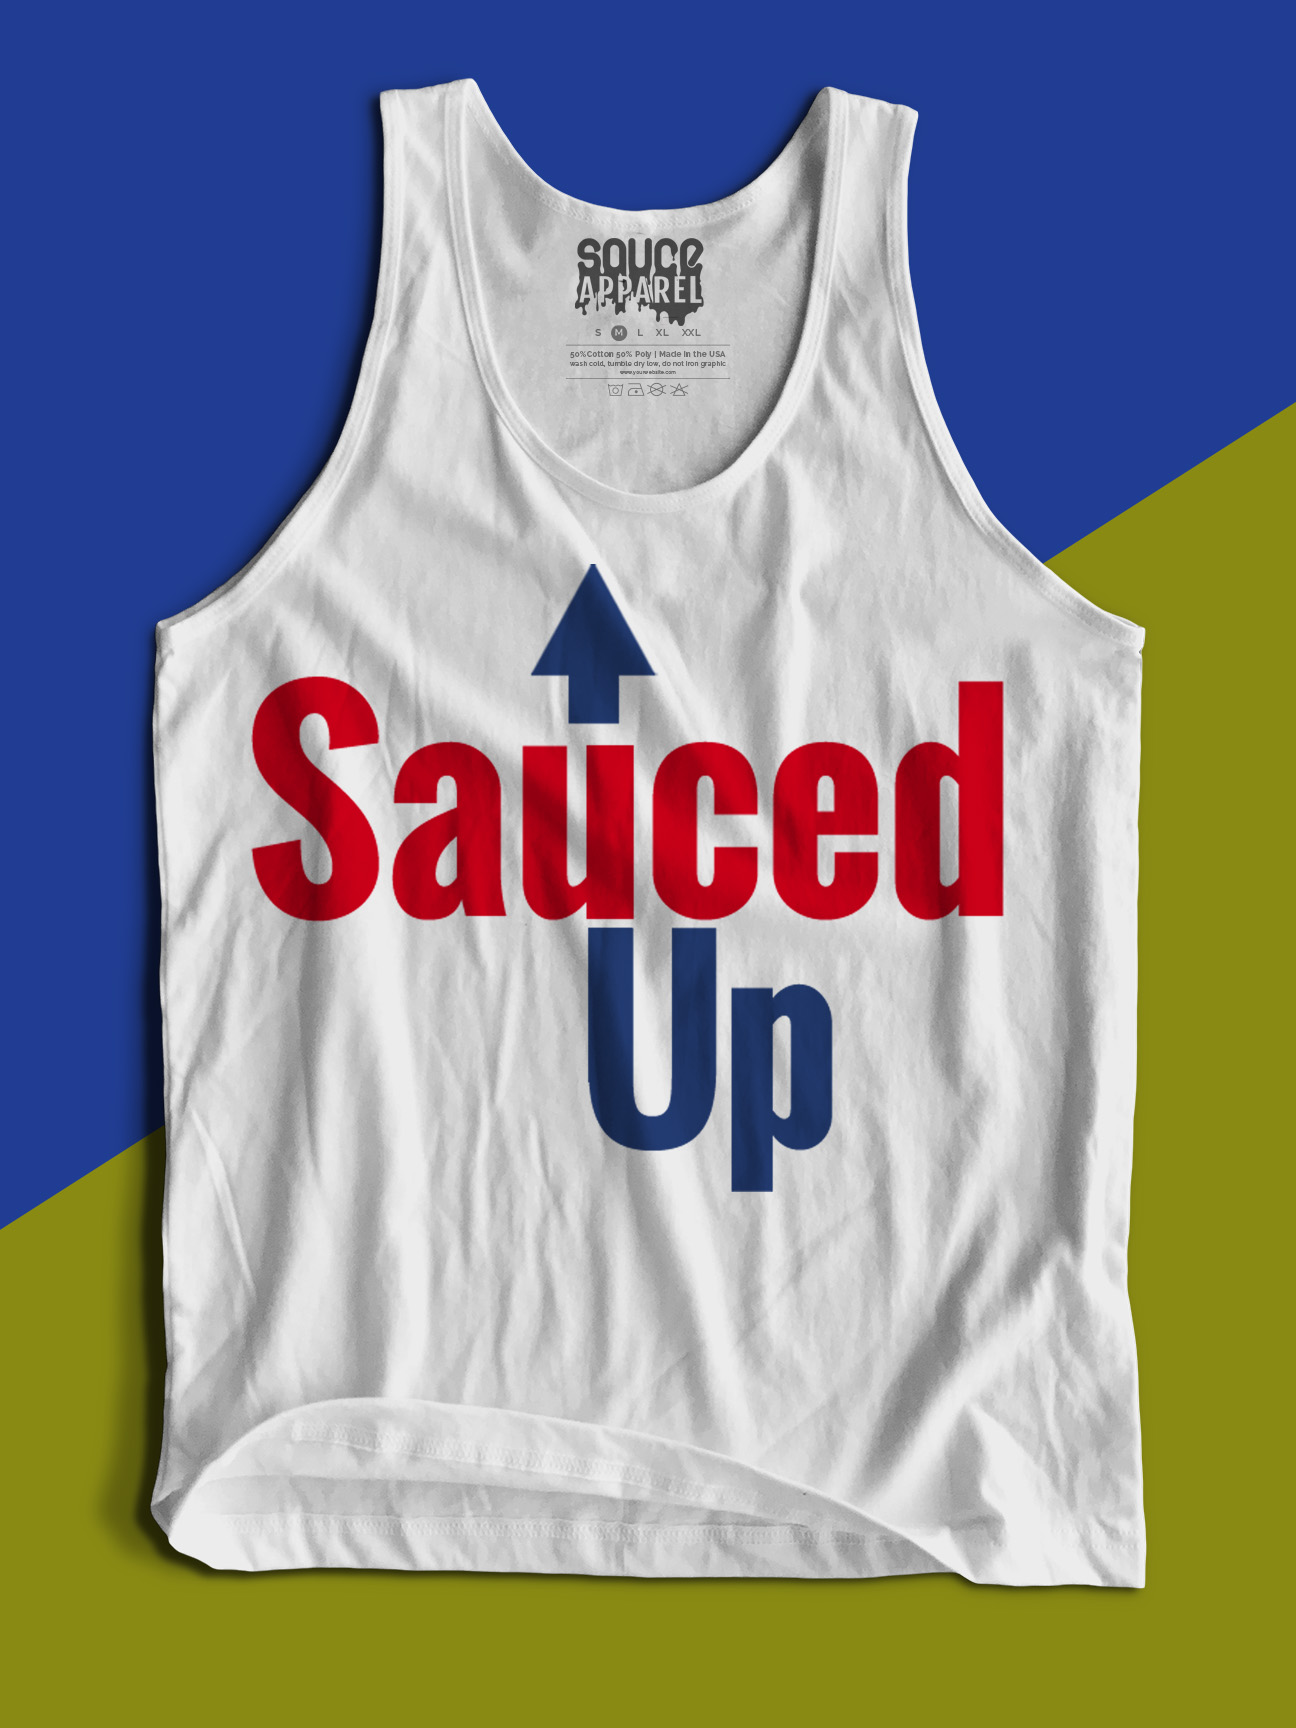 Sauced Up Tanks (White)